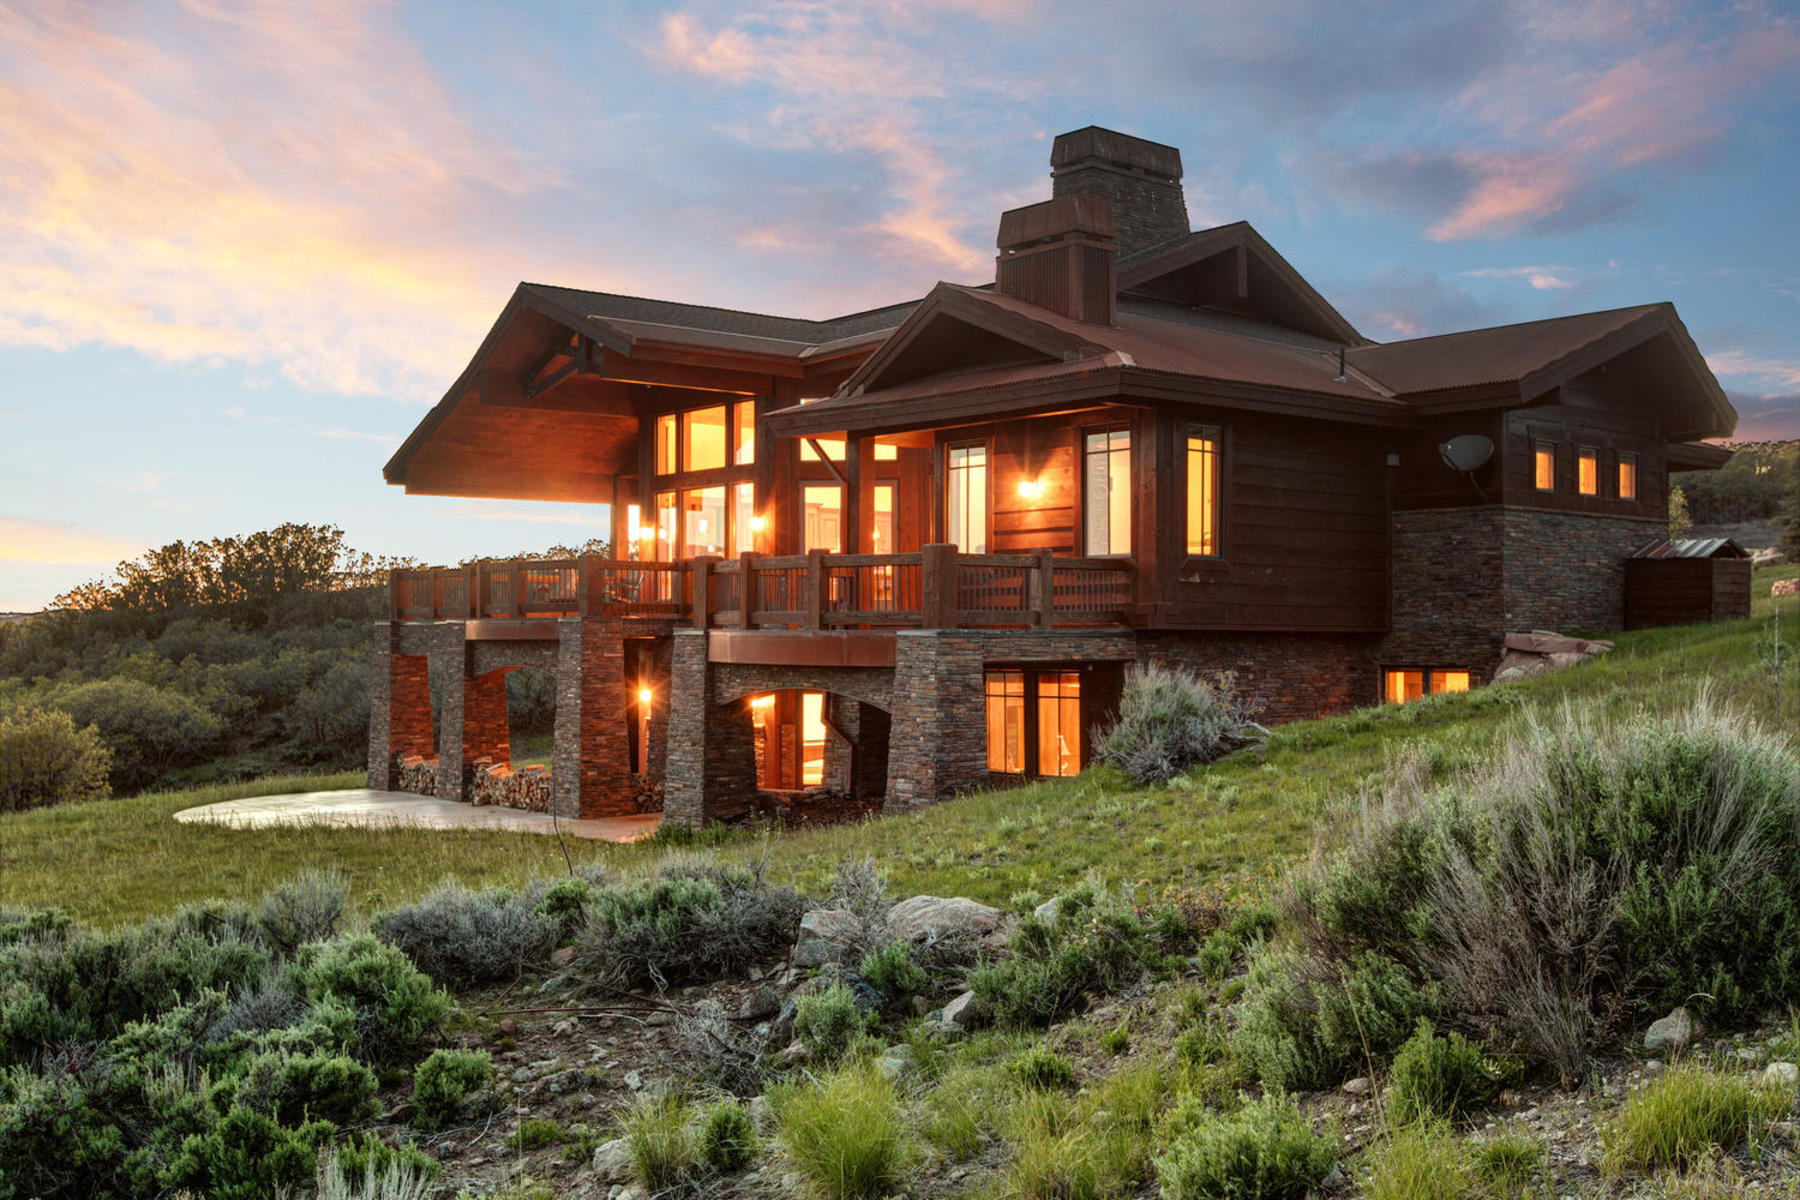 Single Family Home for Sale at Immaculate Promontory Home 8931 Hidden Hill Lp Park City, Utah, 84098 United States